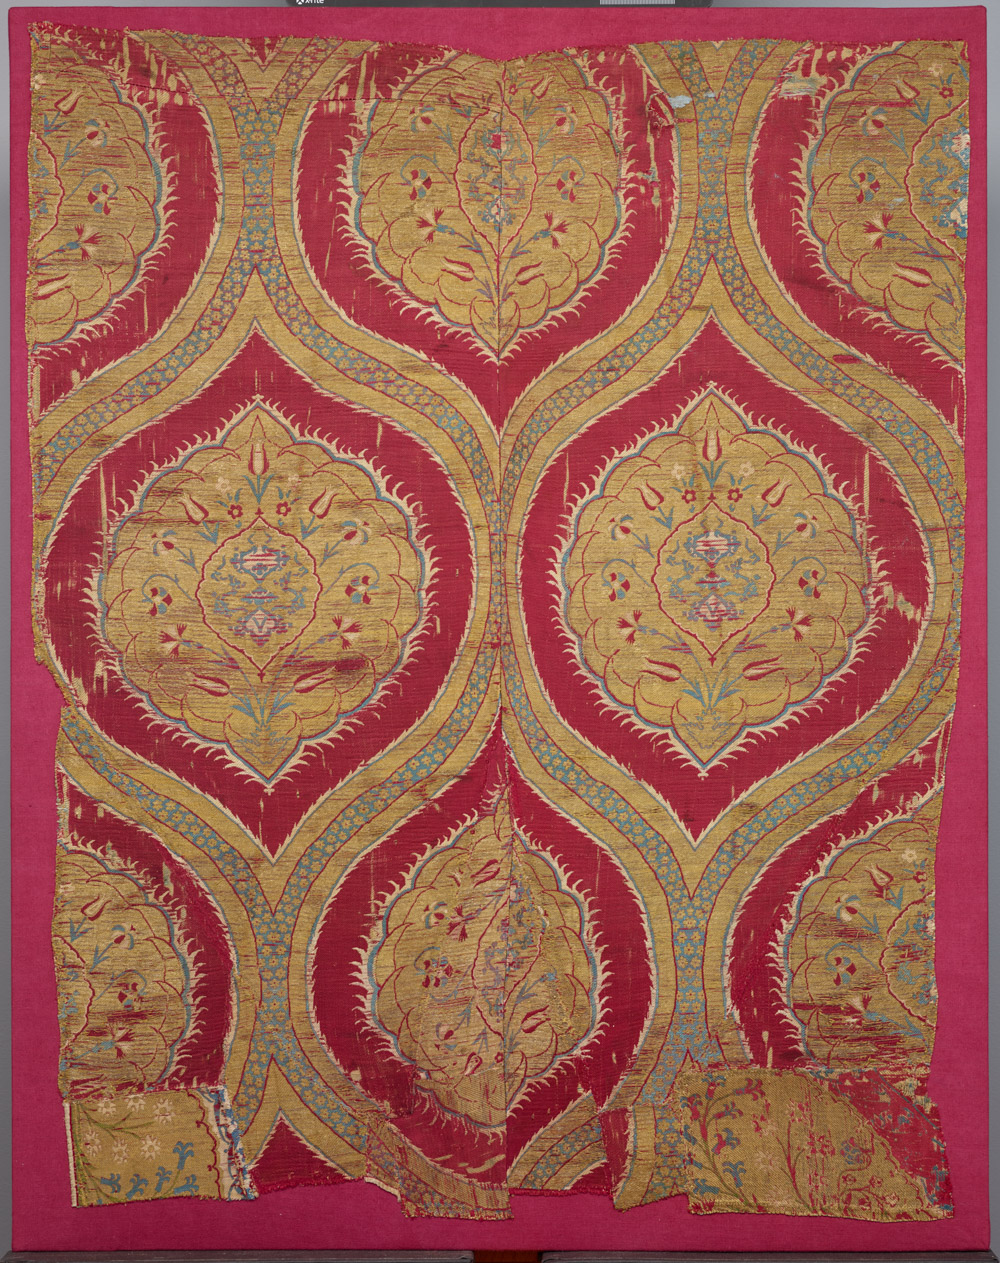 The Keir Collection of Islamic Art on loan to the Dallas Museum of Art, K.1.2014.49